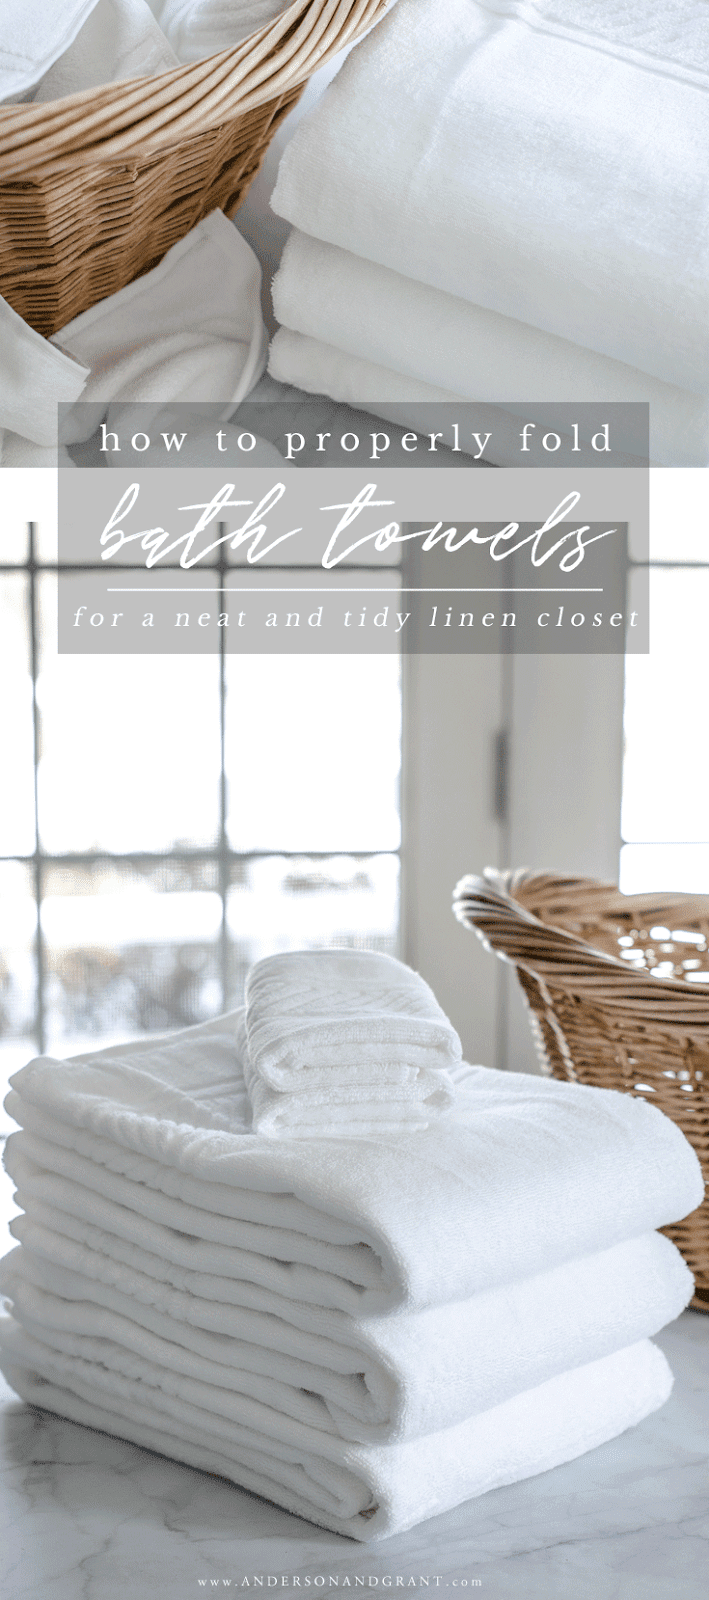 Learn the proper way to fold washcloths, hand towels, and bath towels for a neat and tidy bathroom linen closet.  |  www.andersonandgrant.com